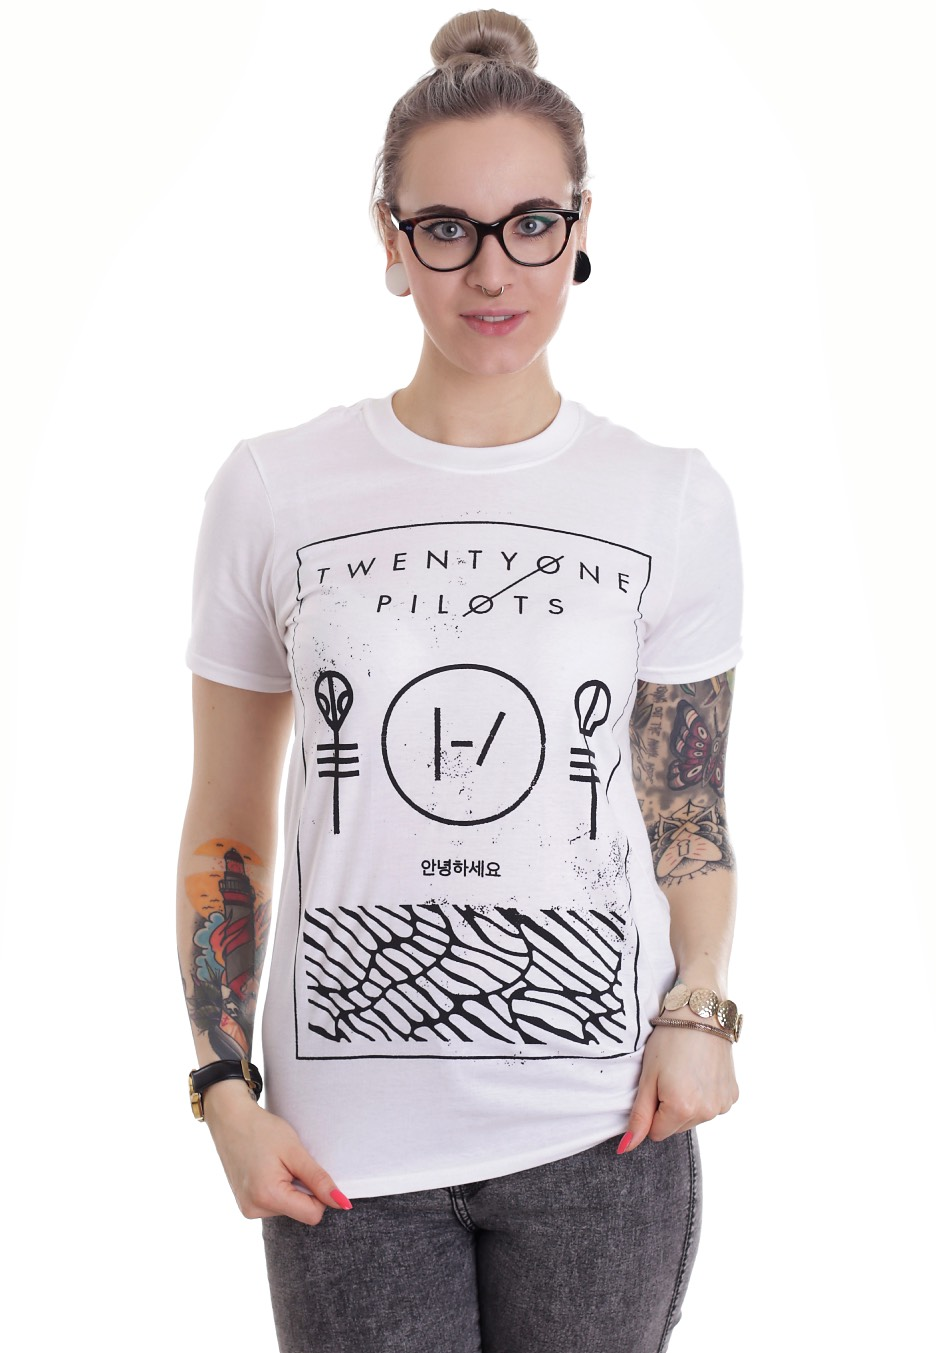 Twenty one pilots thin line box white t shirt for Twenty one pilots